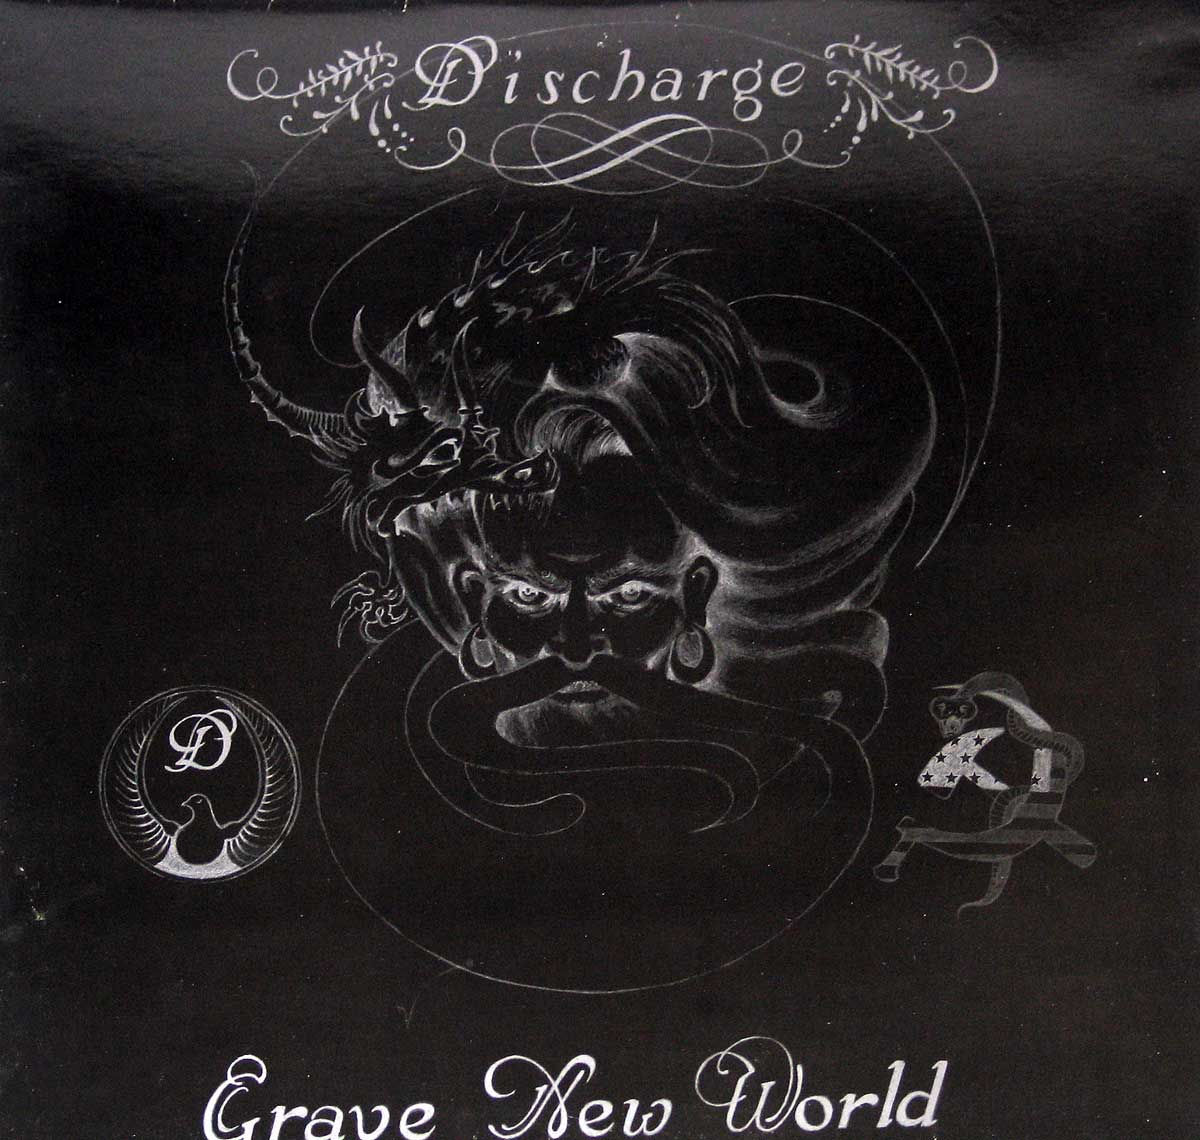 large photo of the album front cover of: DISCHARGE - Grave New World